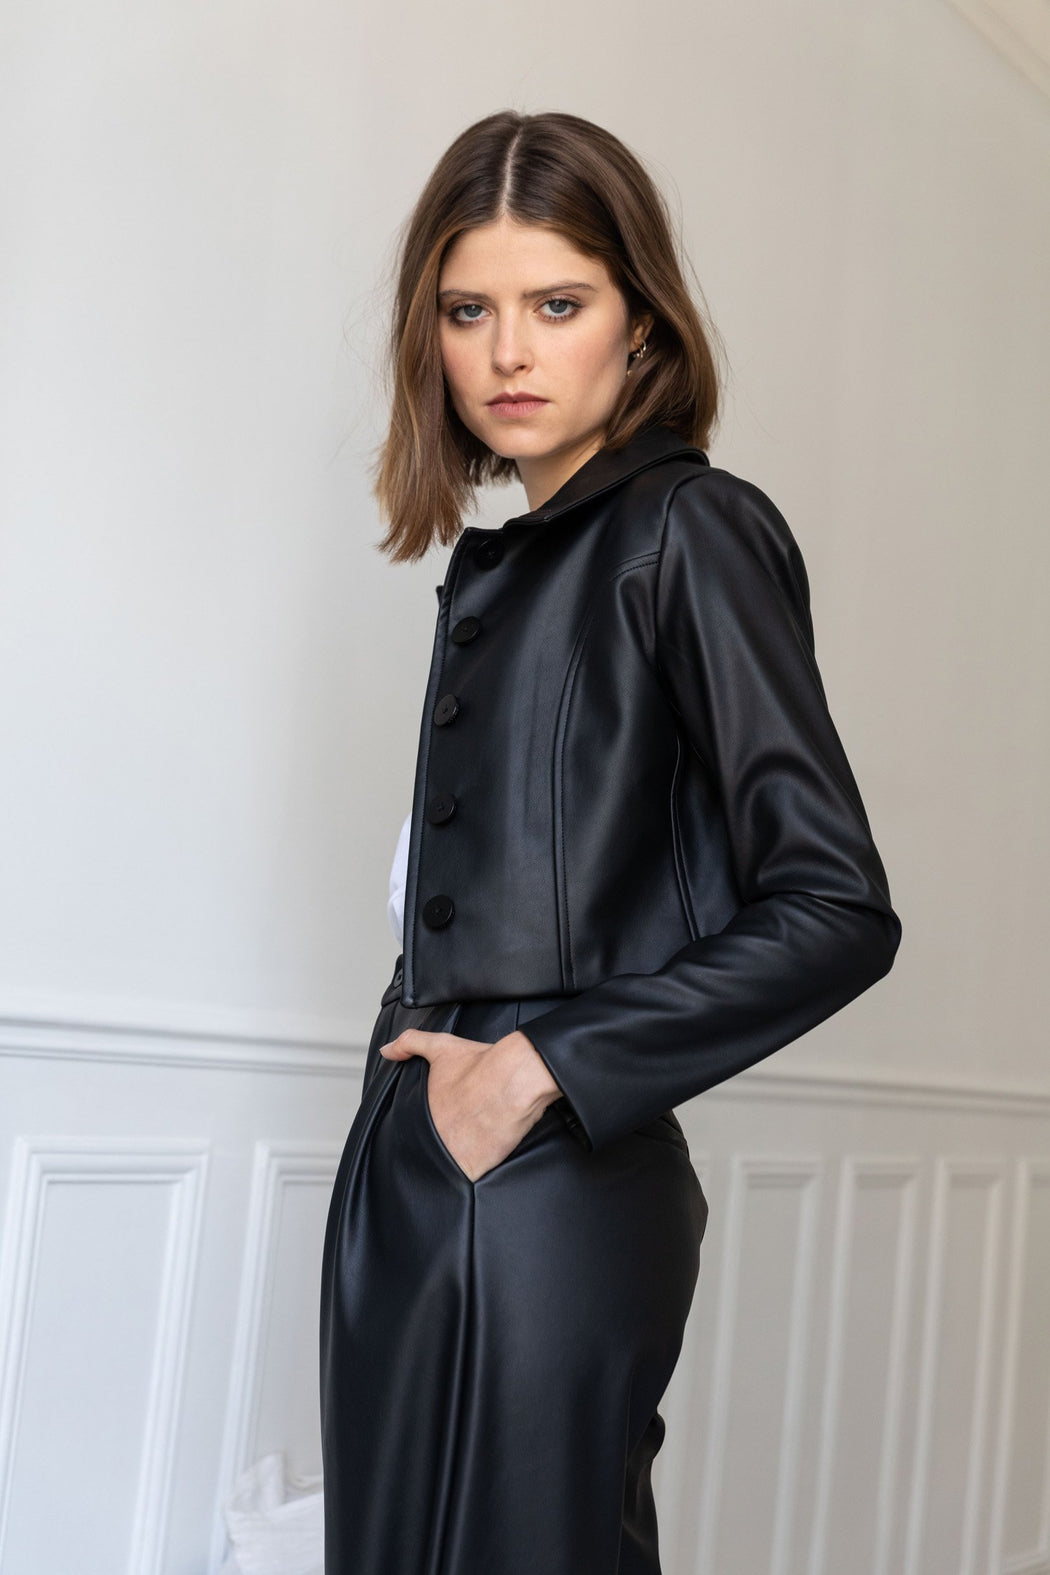 MATTE FAUX LEATHER JACKIE JACKET - Admitted